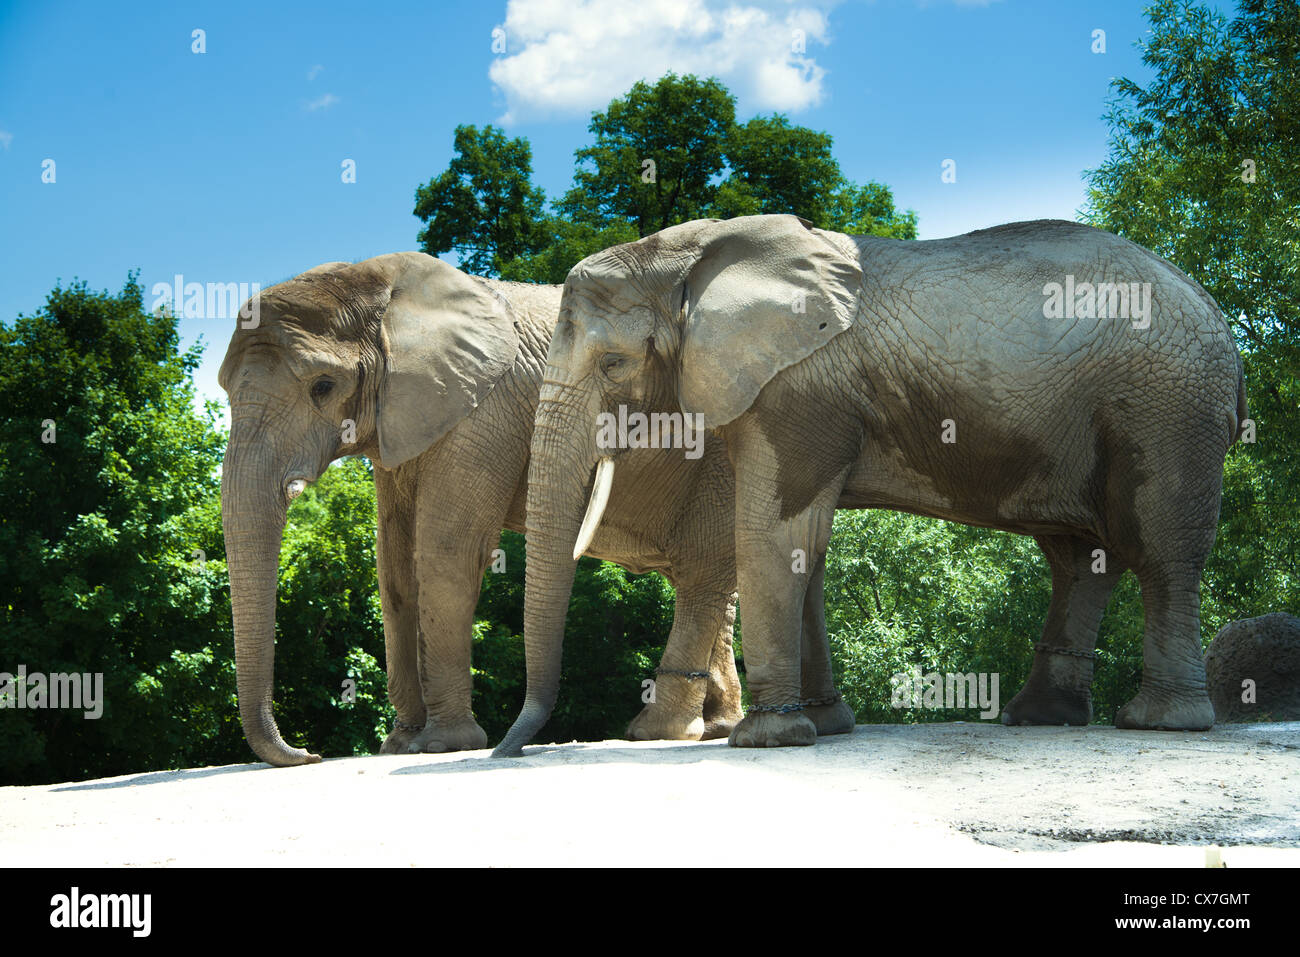 This is an image of African elephants at the Toronto Zoo - Stock Image